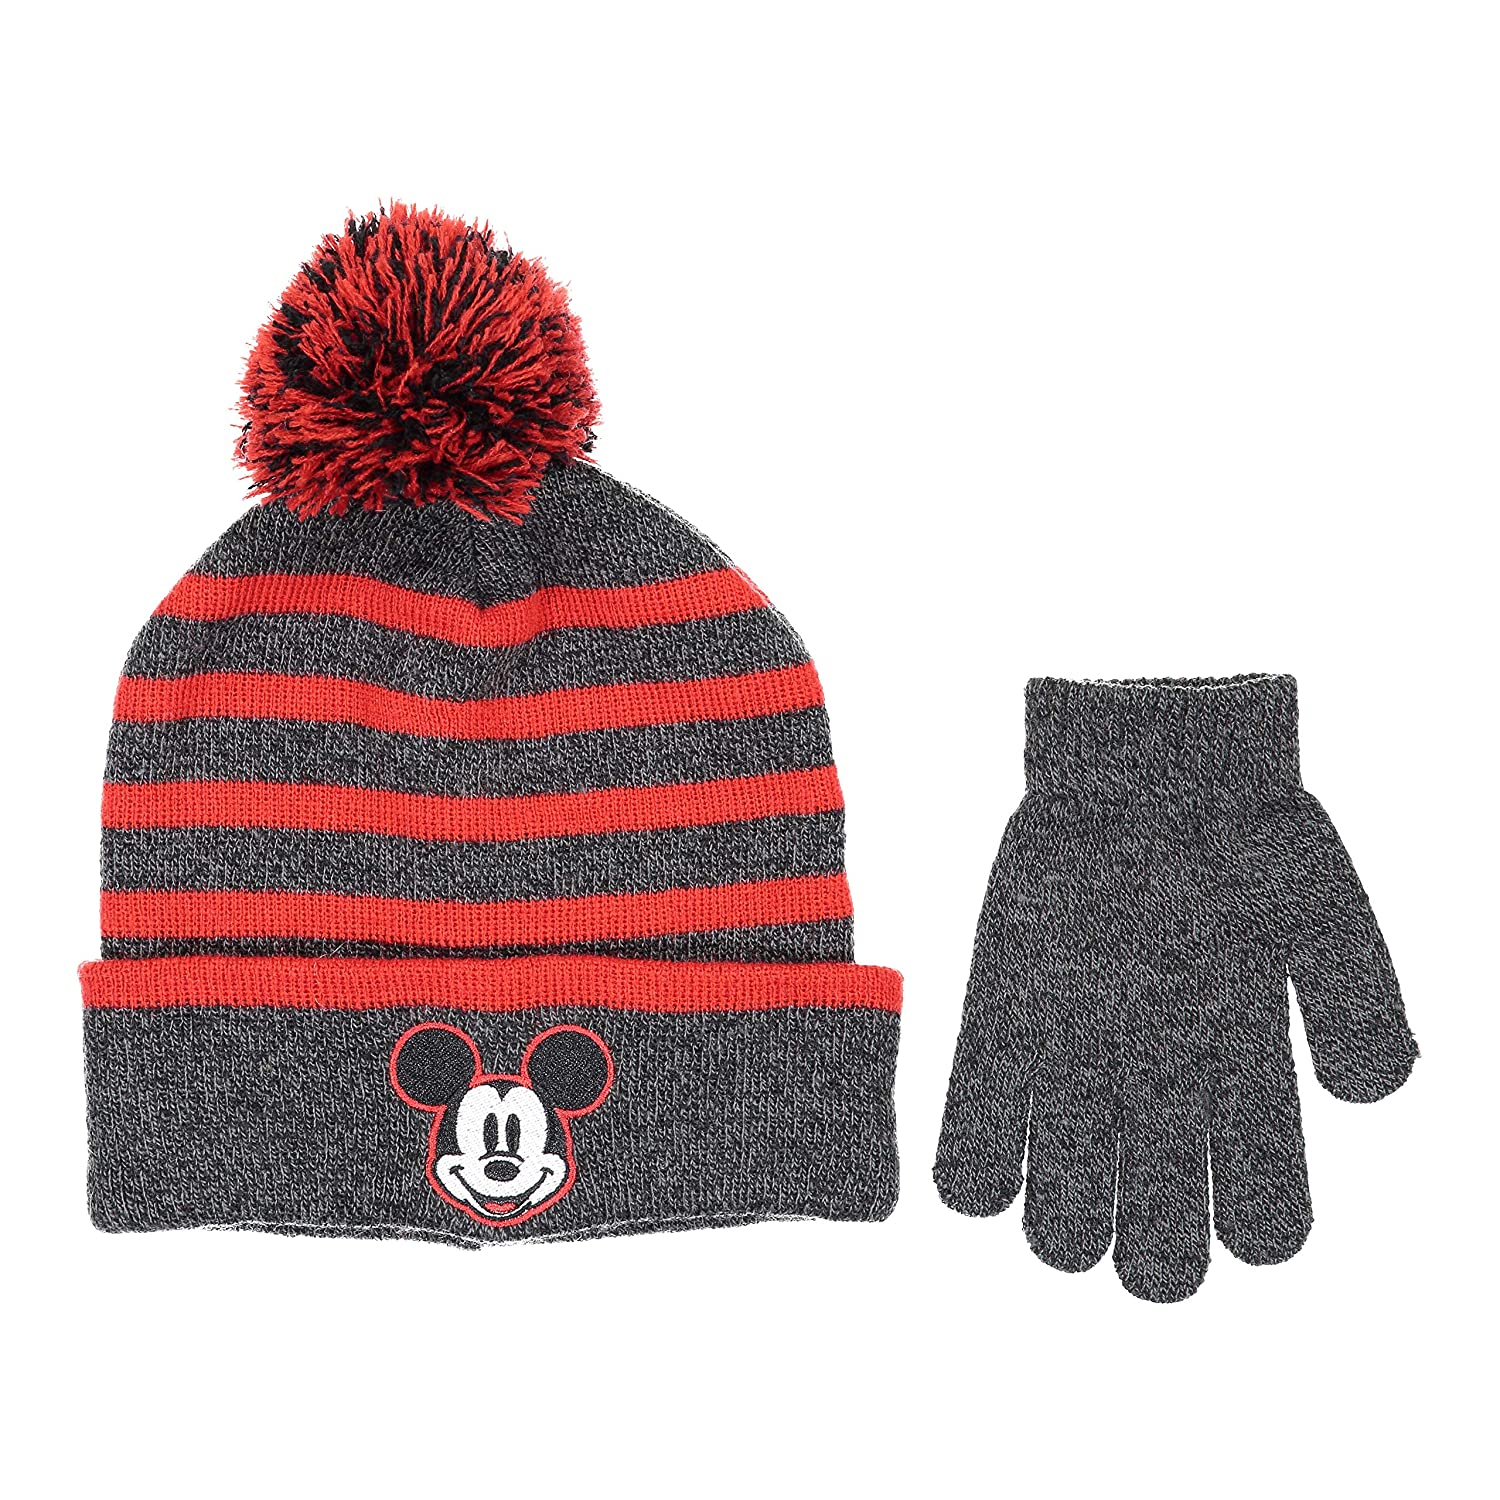 Disney Mickey Mouse Boys Beanie Knit Winter Hat and Glove Set [4015]